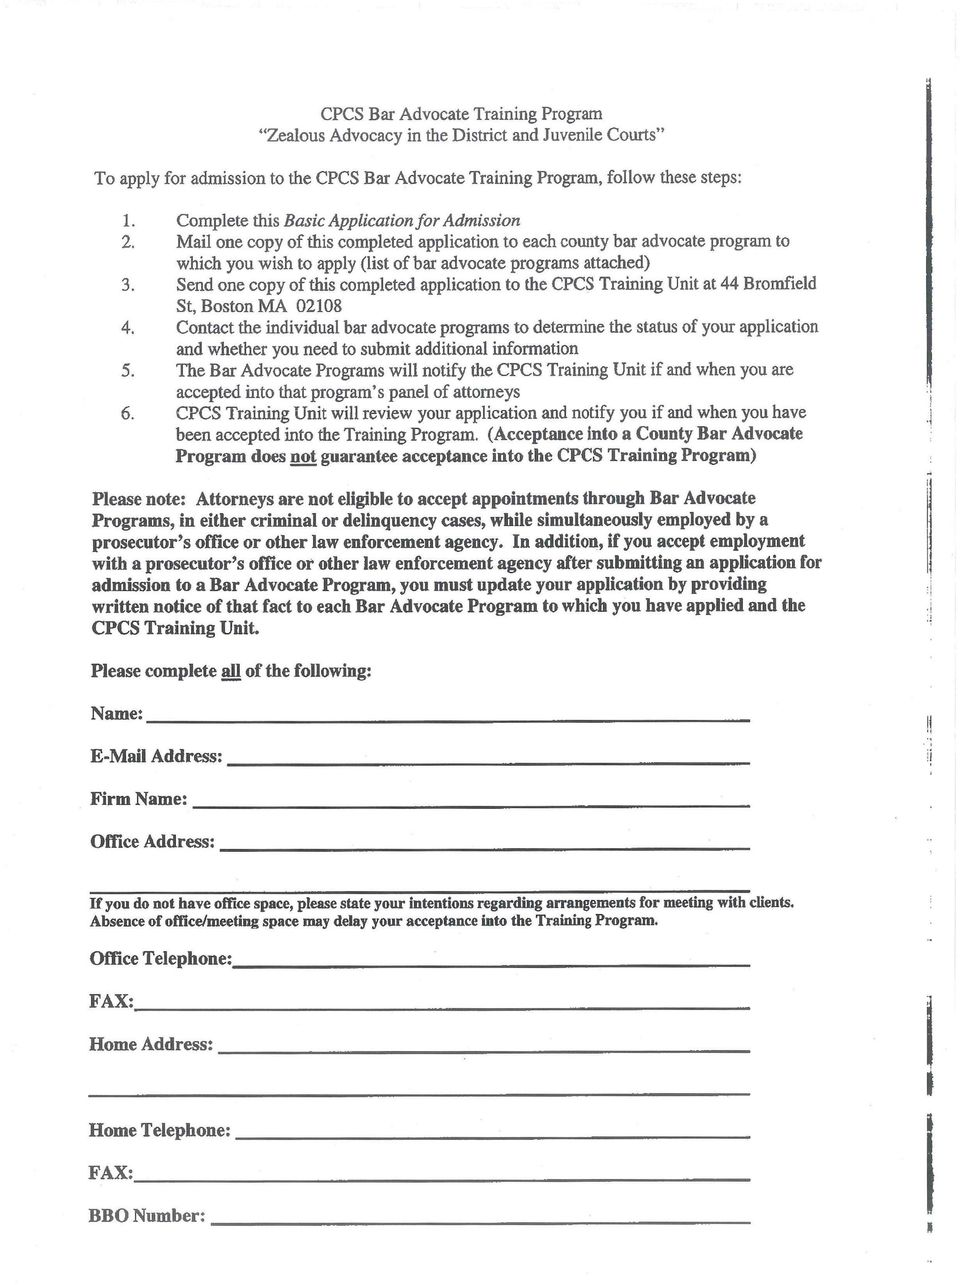 Send one copy of this completed application to the CPCS Training Unit at 44 Bromfield St, Boston MA 02108 4.